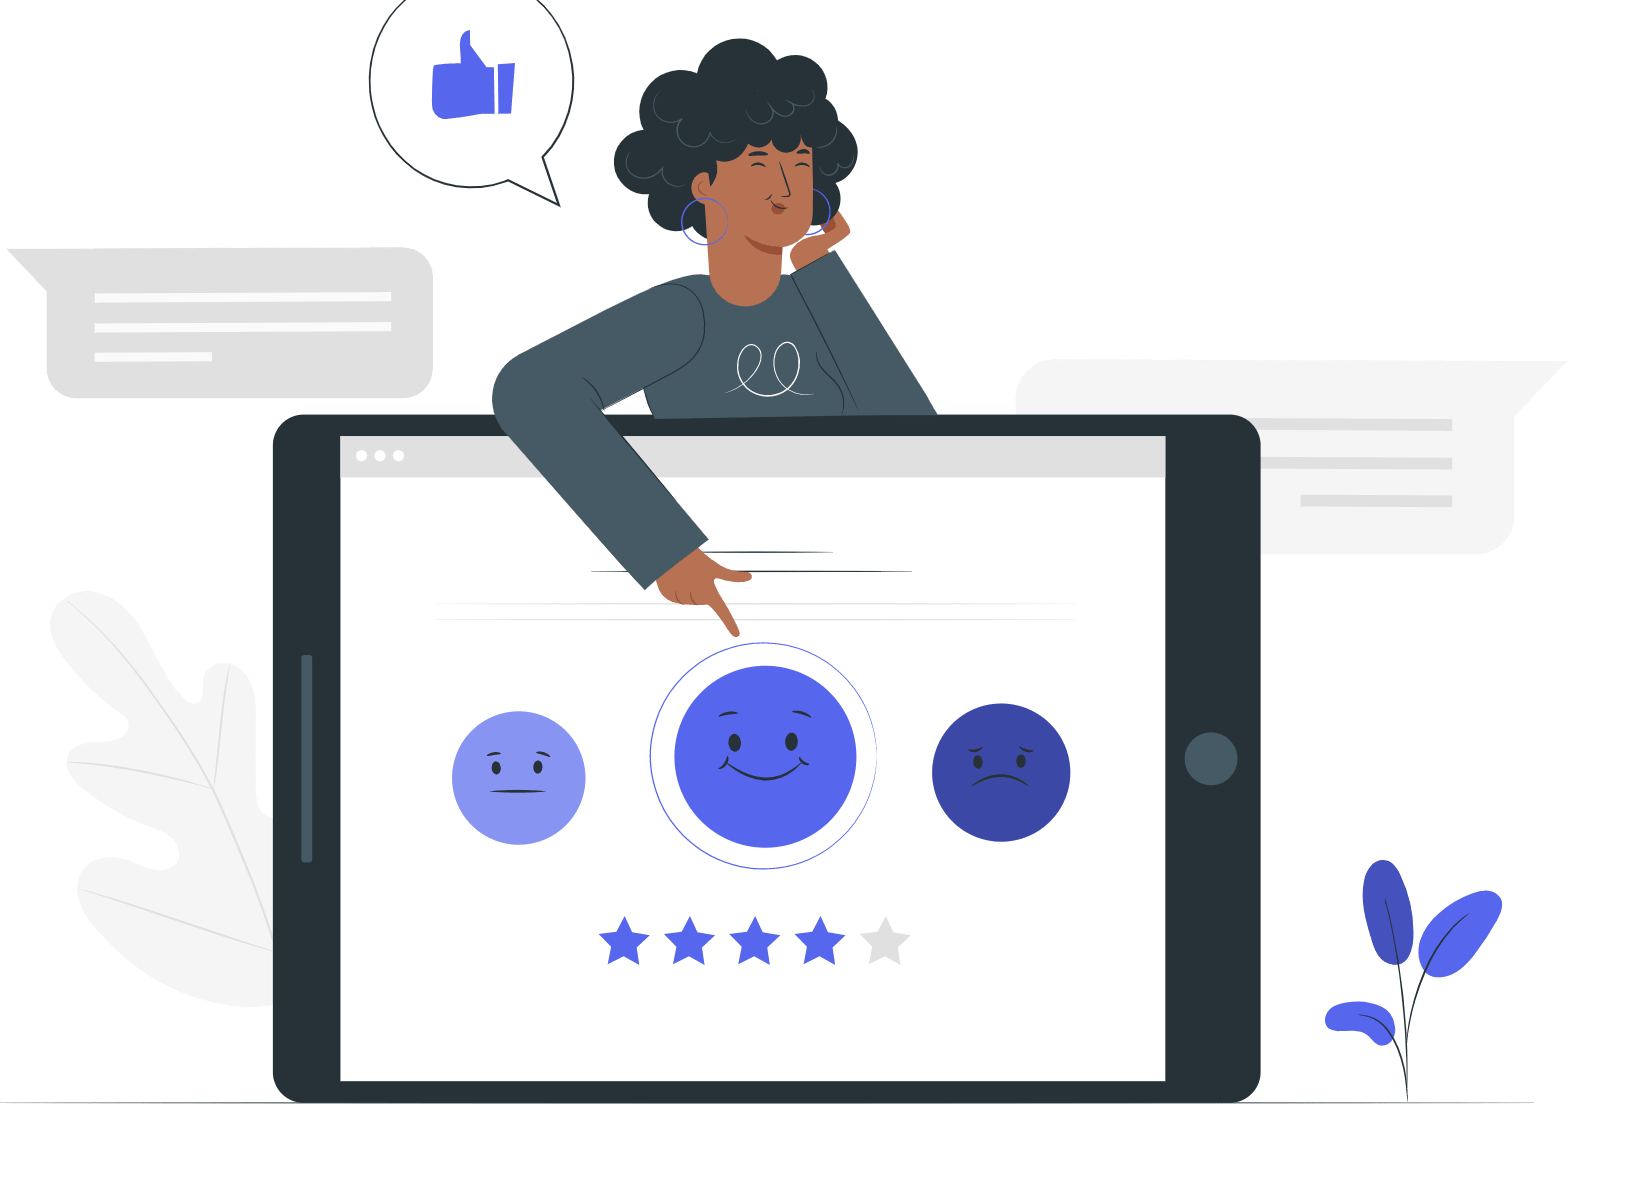 provide best customer service and experience as it affects customer loyalty and satisfaction. Satisfied customers are more likley to spend more